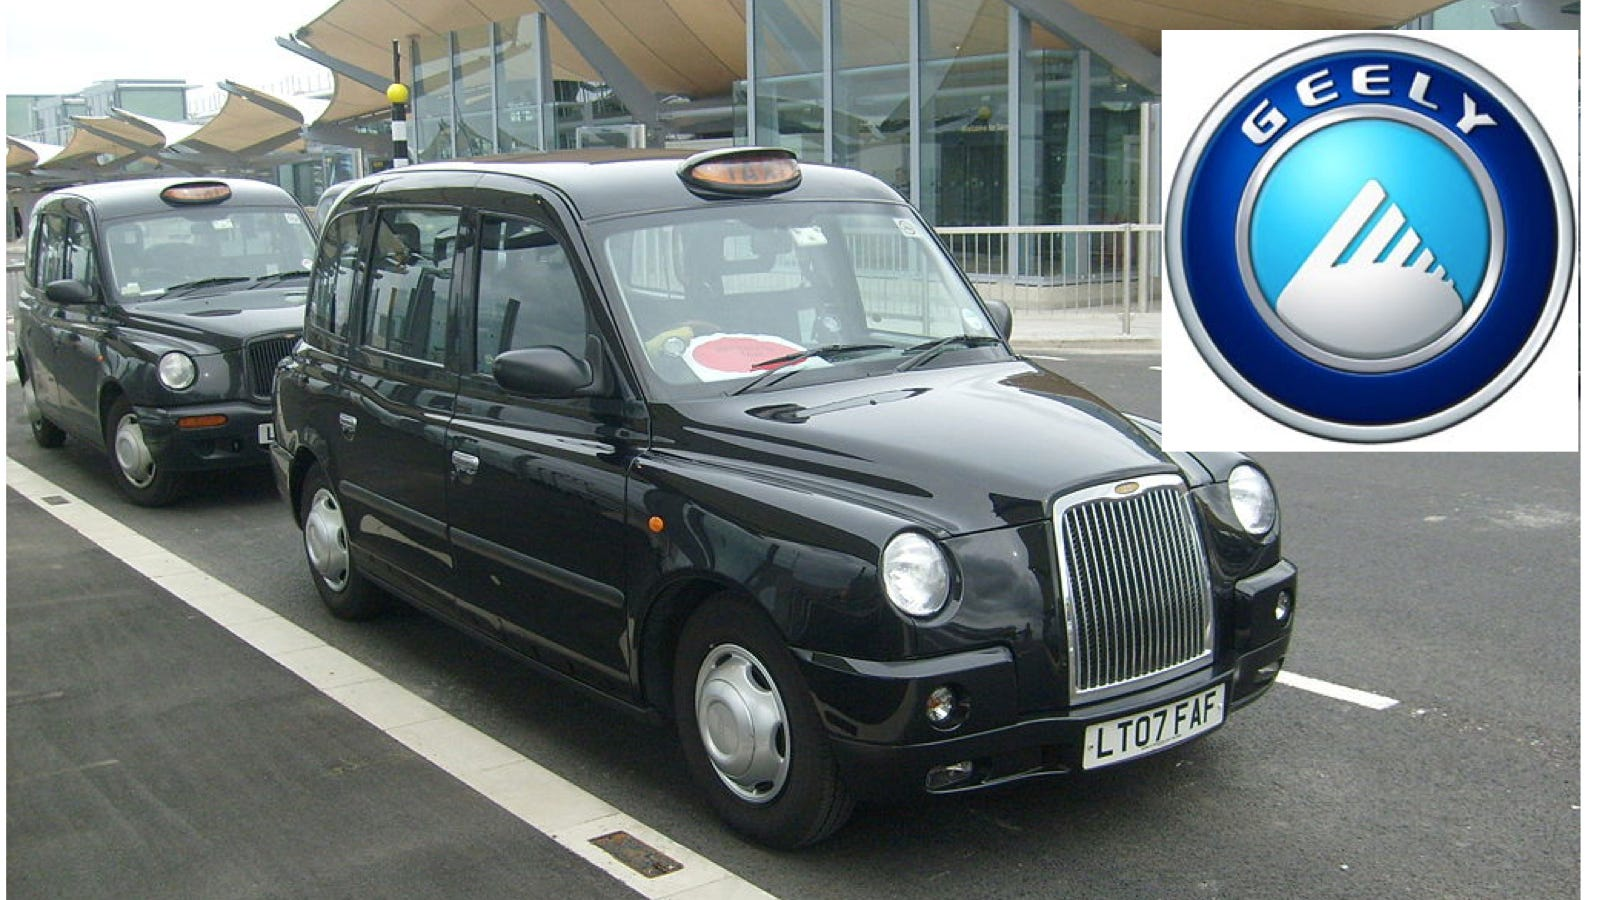 Volvo's Chinese Parent Geely Swoops In To Save The London Taxi